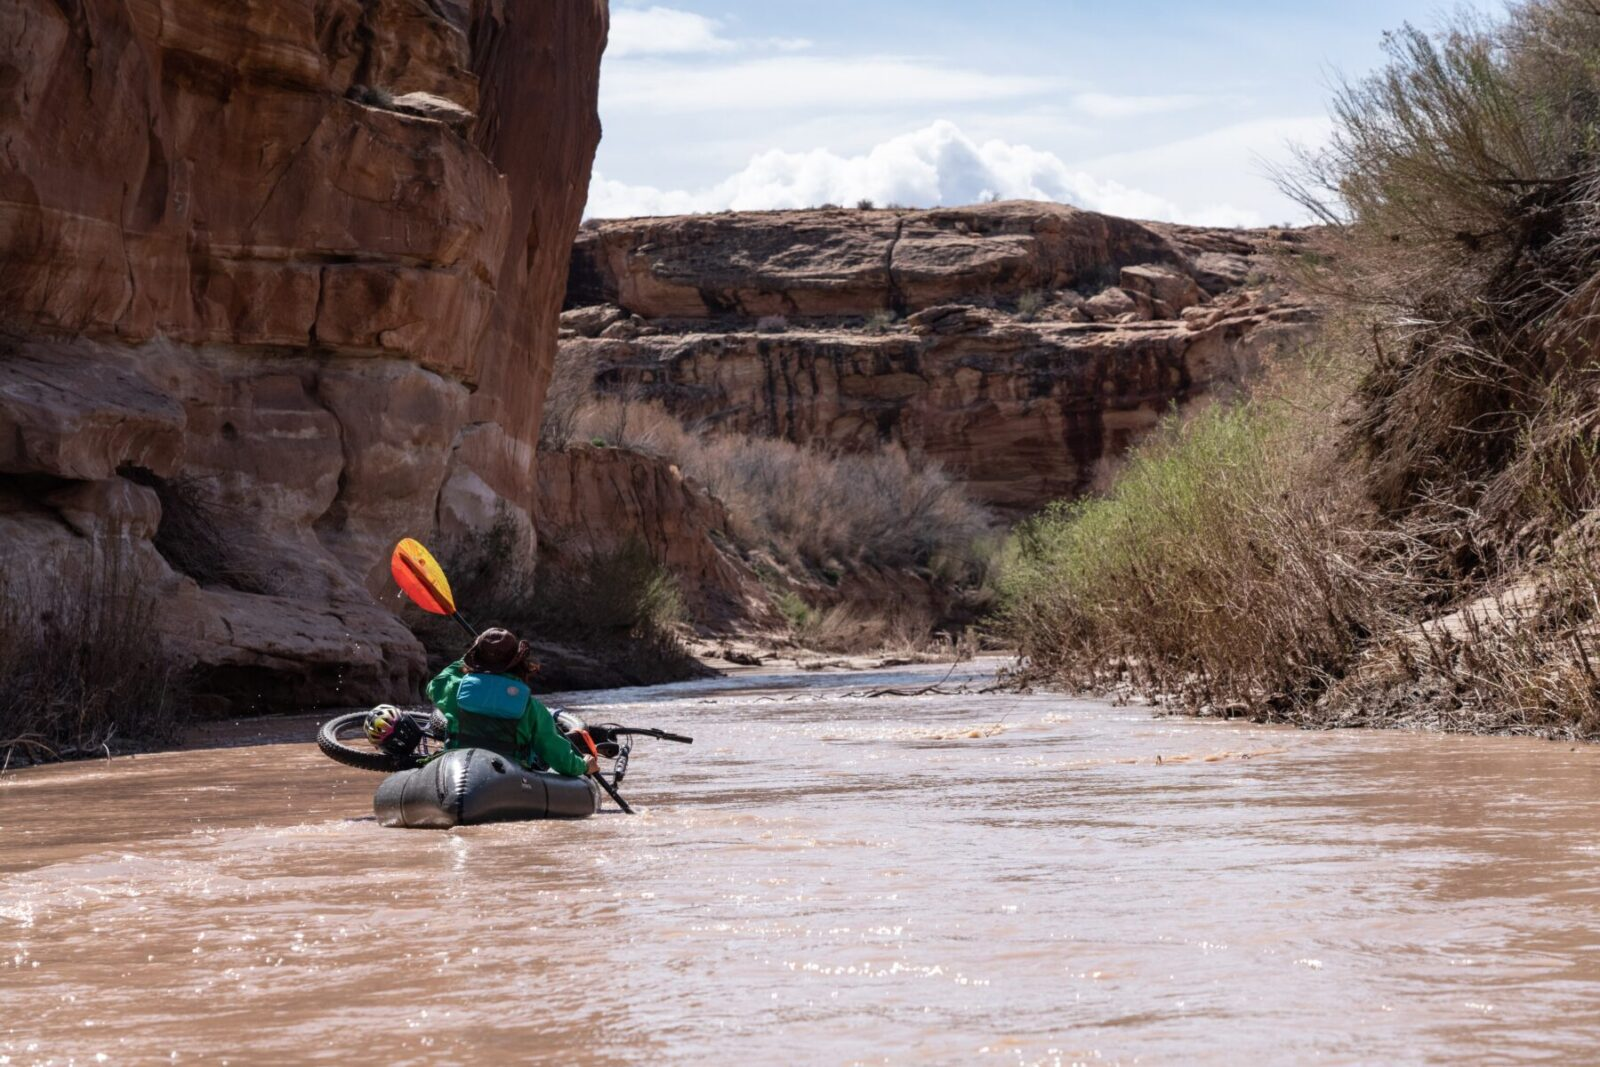 Lizzy Scully bikerafting in Southern Utah.